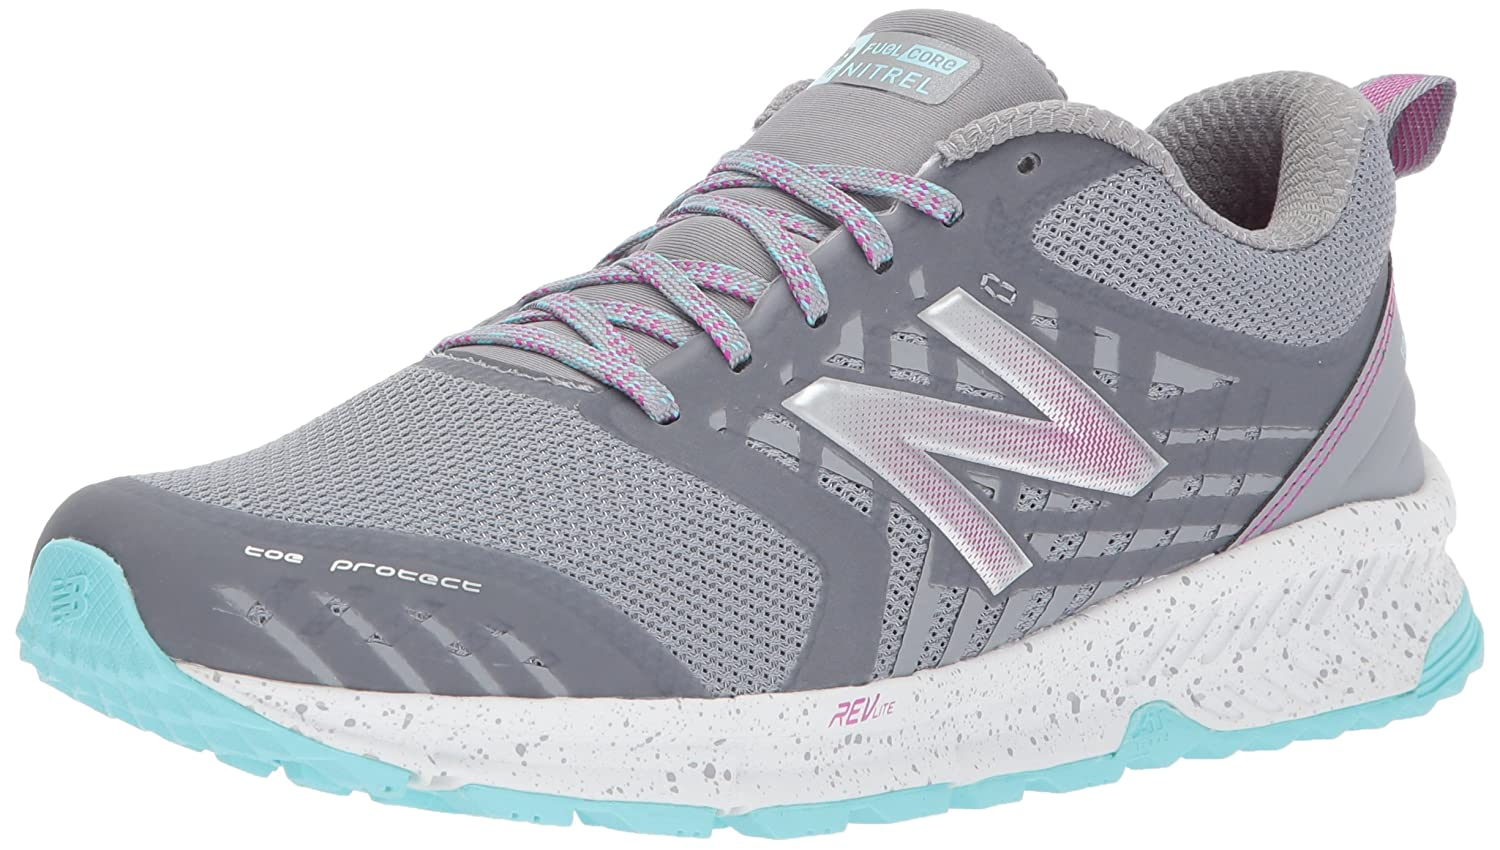 New Balance Women's Nitrel v1 FuelCore Trail Running Shoe B01MY1YALB 8.5 D US|Steel